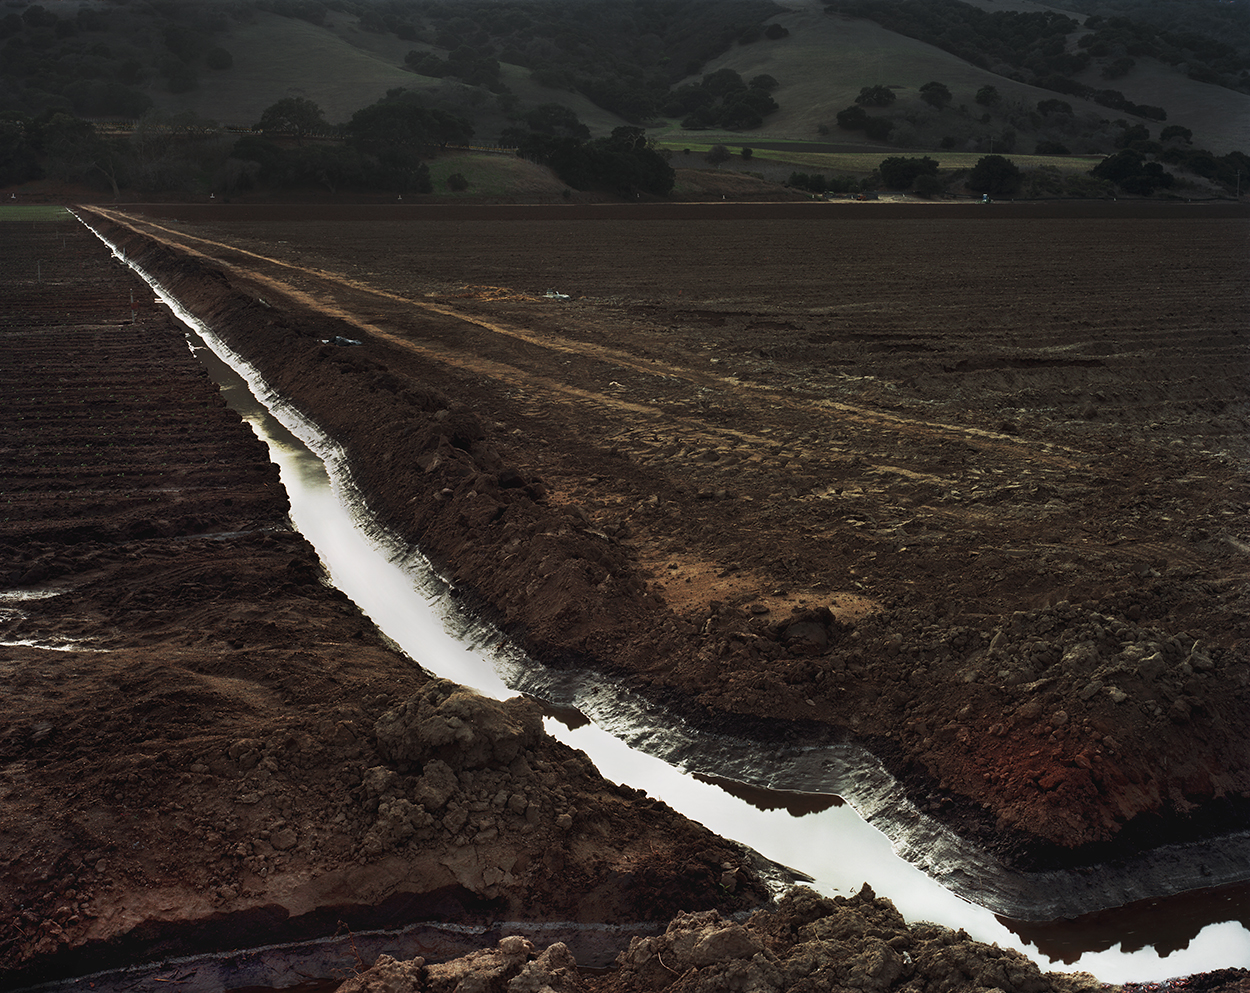 IRRIGATION, The River Road, Salinas Valley